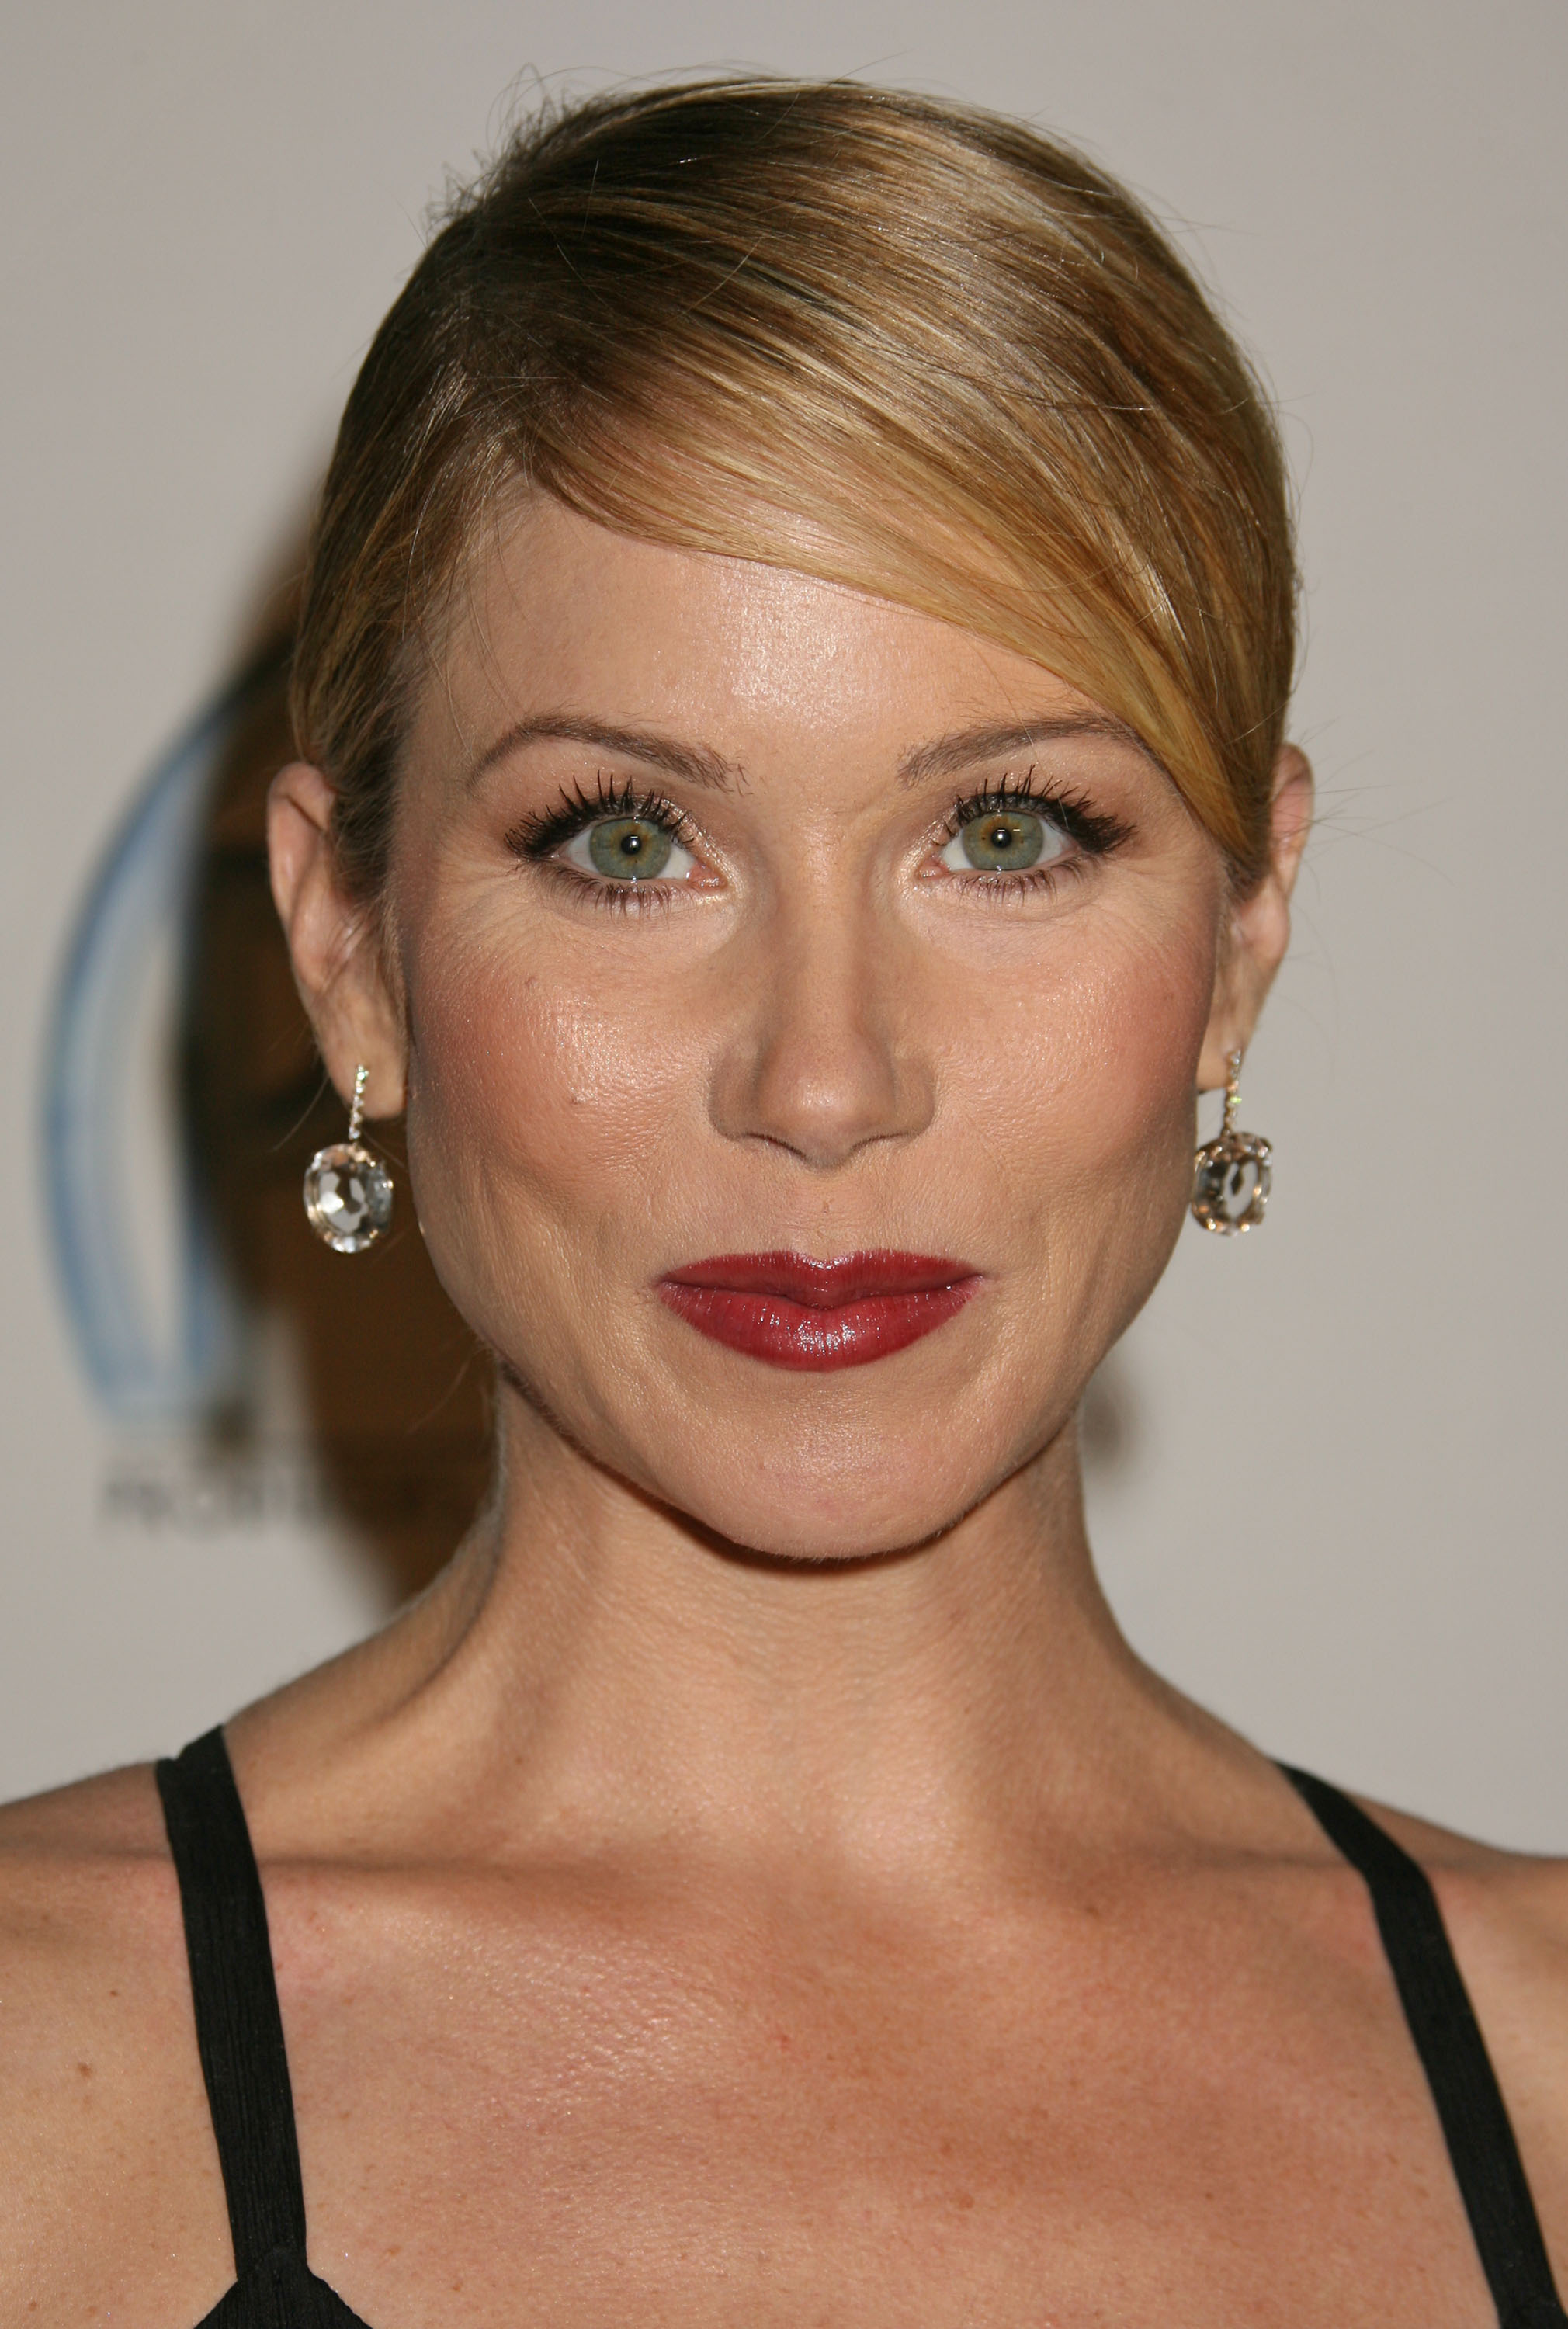 Christina Applegate photo gallery - page #8 | Celebs-Place.com